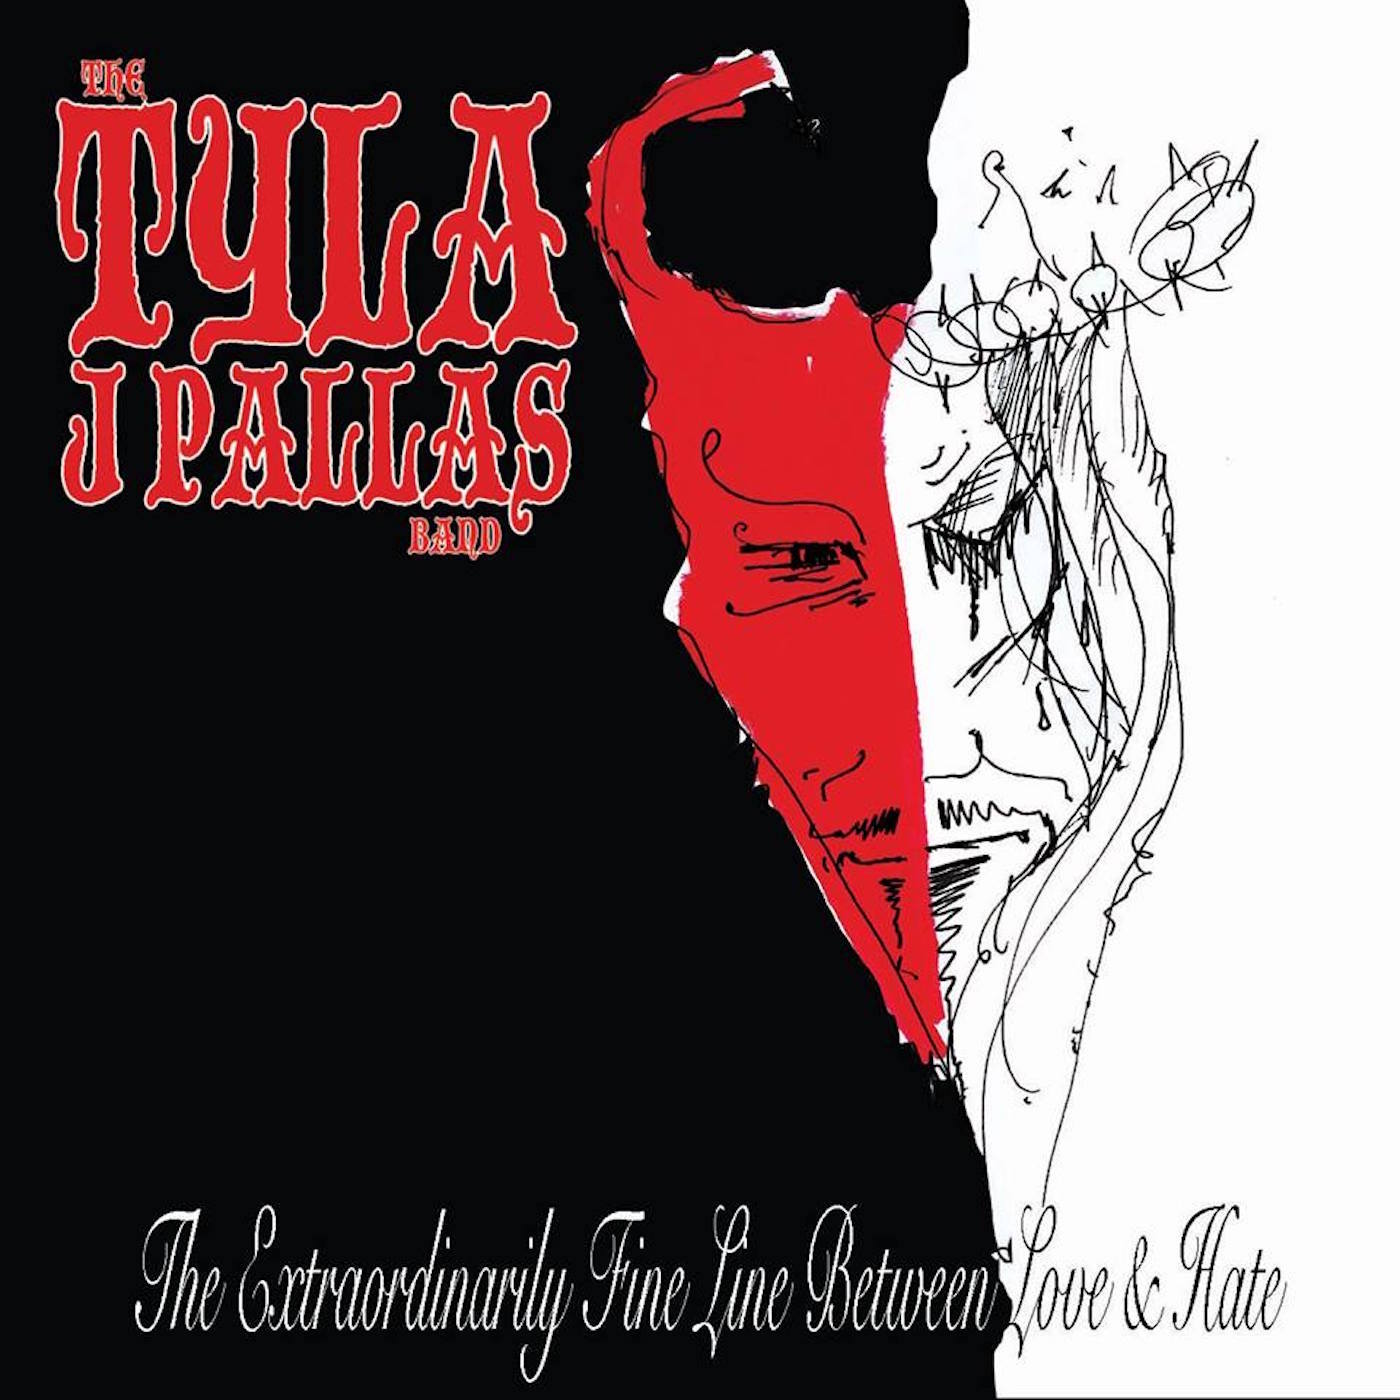 Tyla J Pallas Band artwork